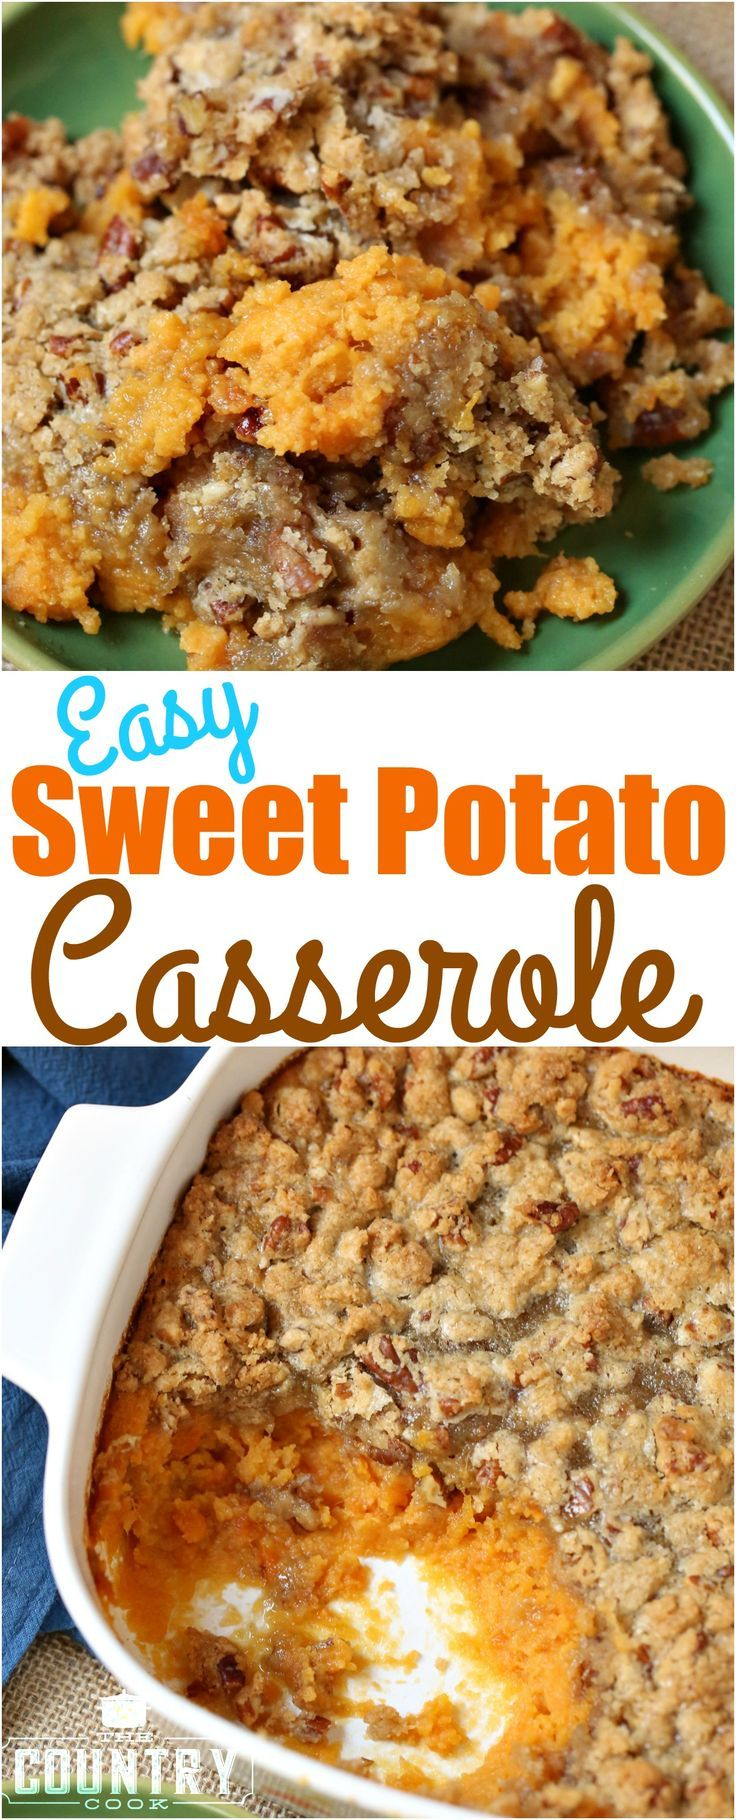 Easy Sweet Potato Casserole recipe from The Country Cook. So simple and my favor…